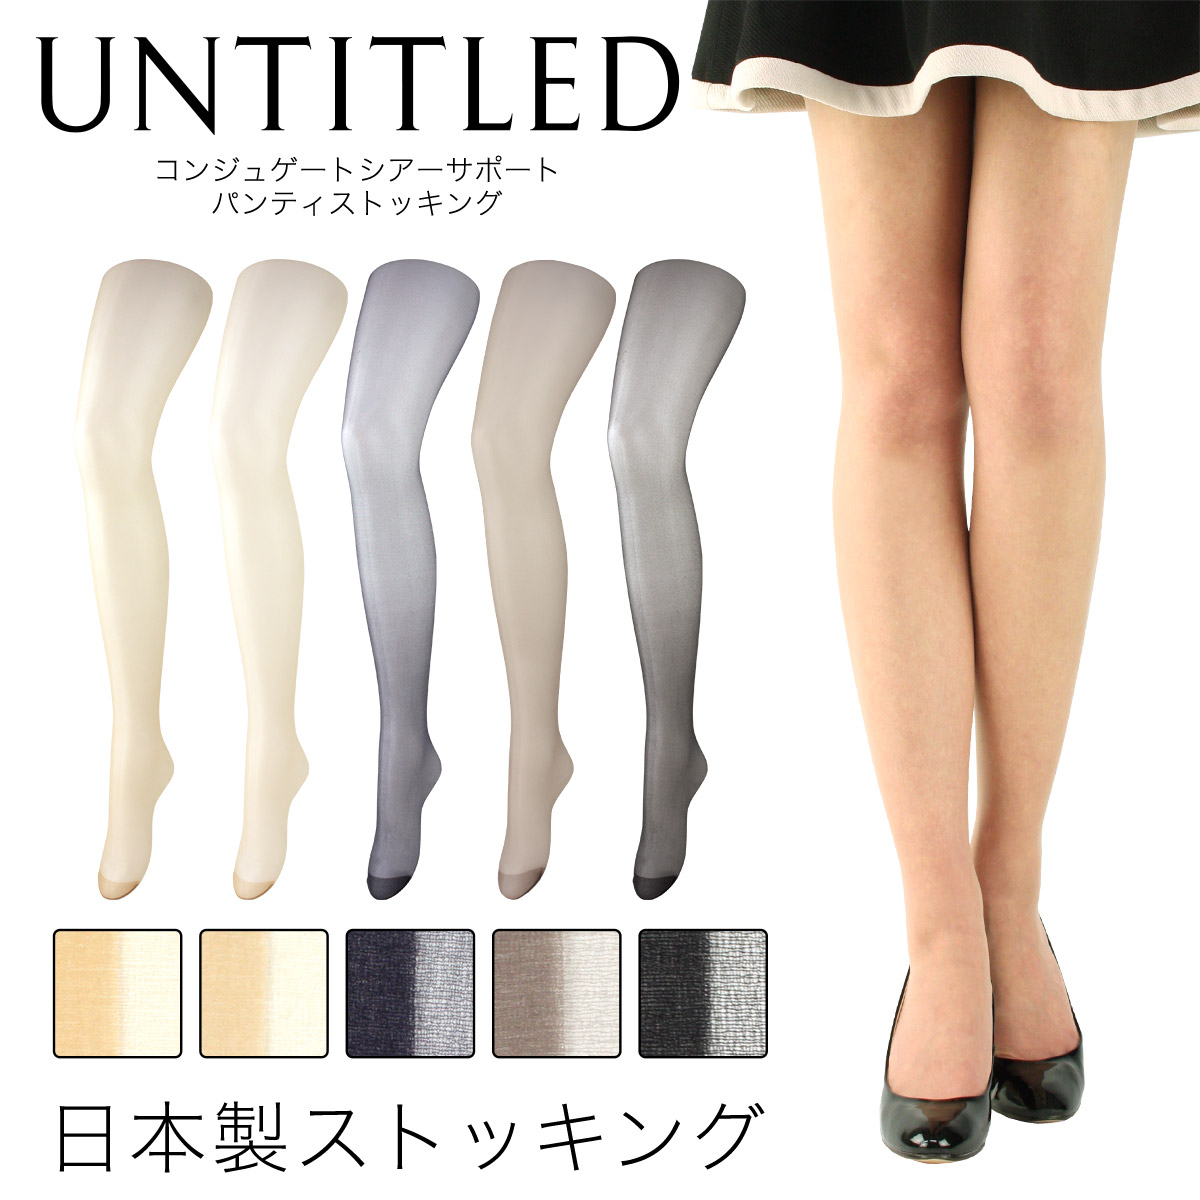 UNTITLED - Women's Panty Stockings / Pantyhose [ Sheer Type ] [ Leg Support ] / 163-3000 / Made in Japan / All items - Point x 10 !!